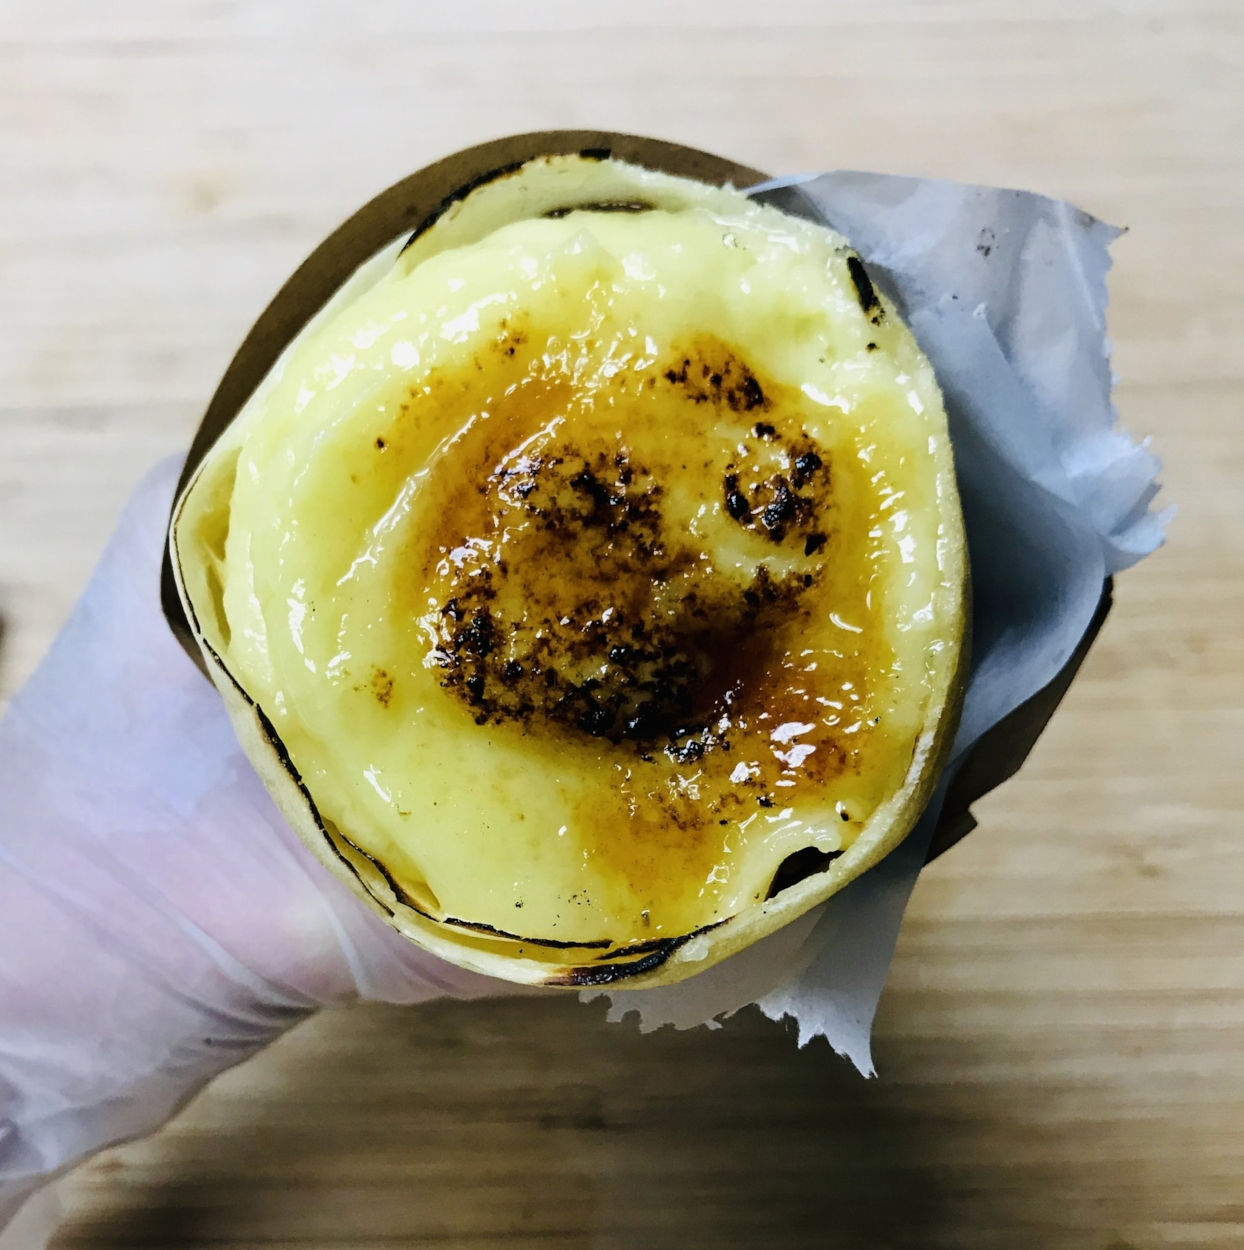 Our Creme Brulee Crepes - Special Japanese crepe batter, each delicious thin crepe is filled with homemade fresh brulee, fresh fruits or real cookies, a scoop of delicious ice cream, then top with a hardened caramelized sugar layer for a perfect finish